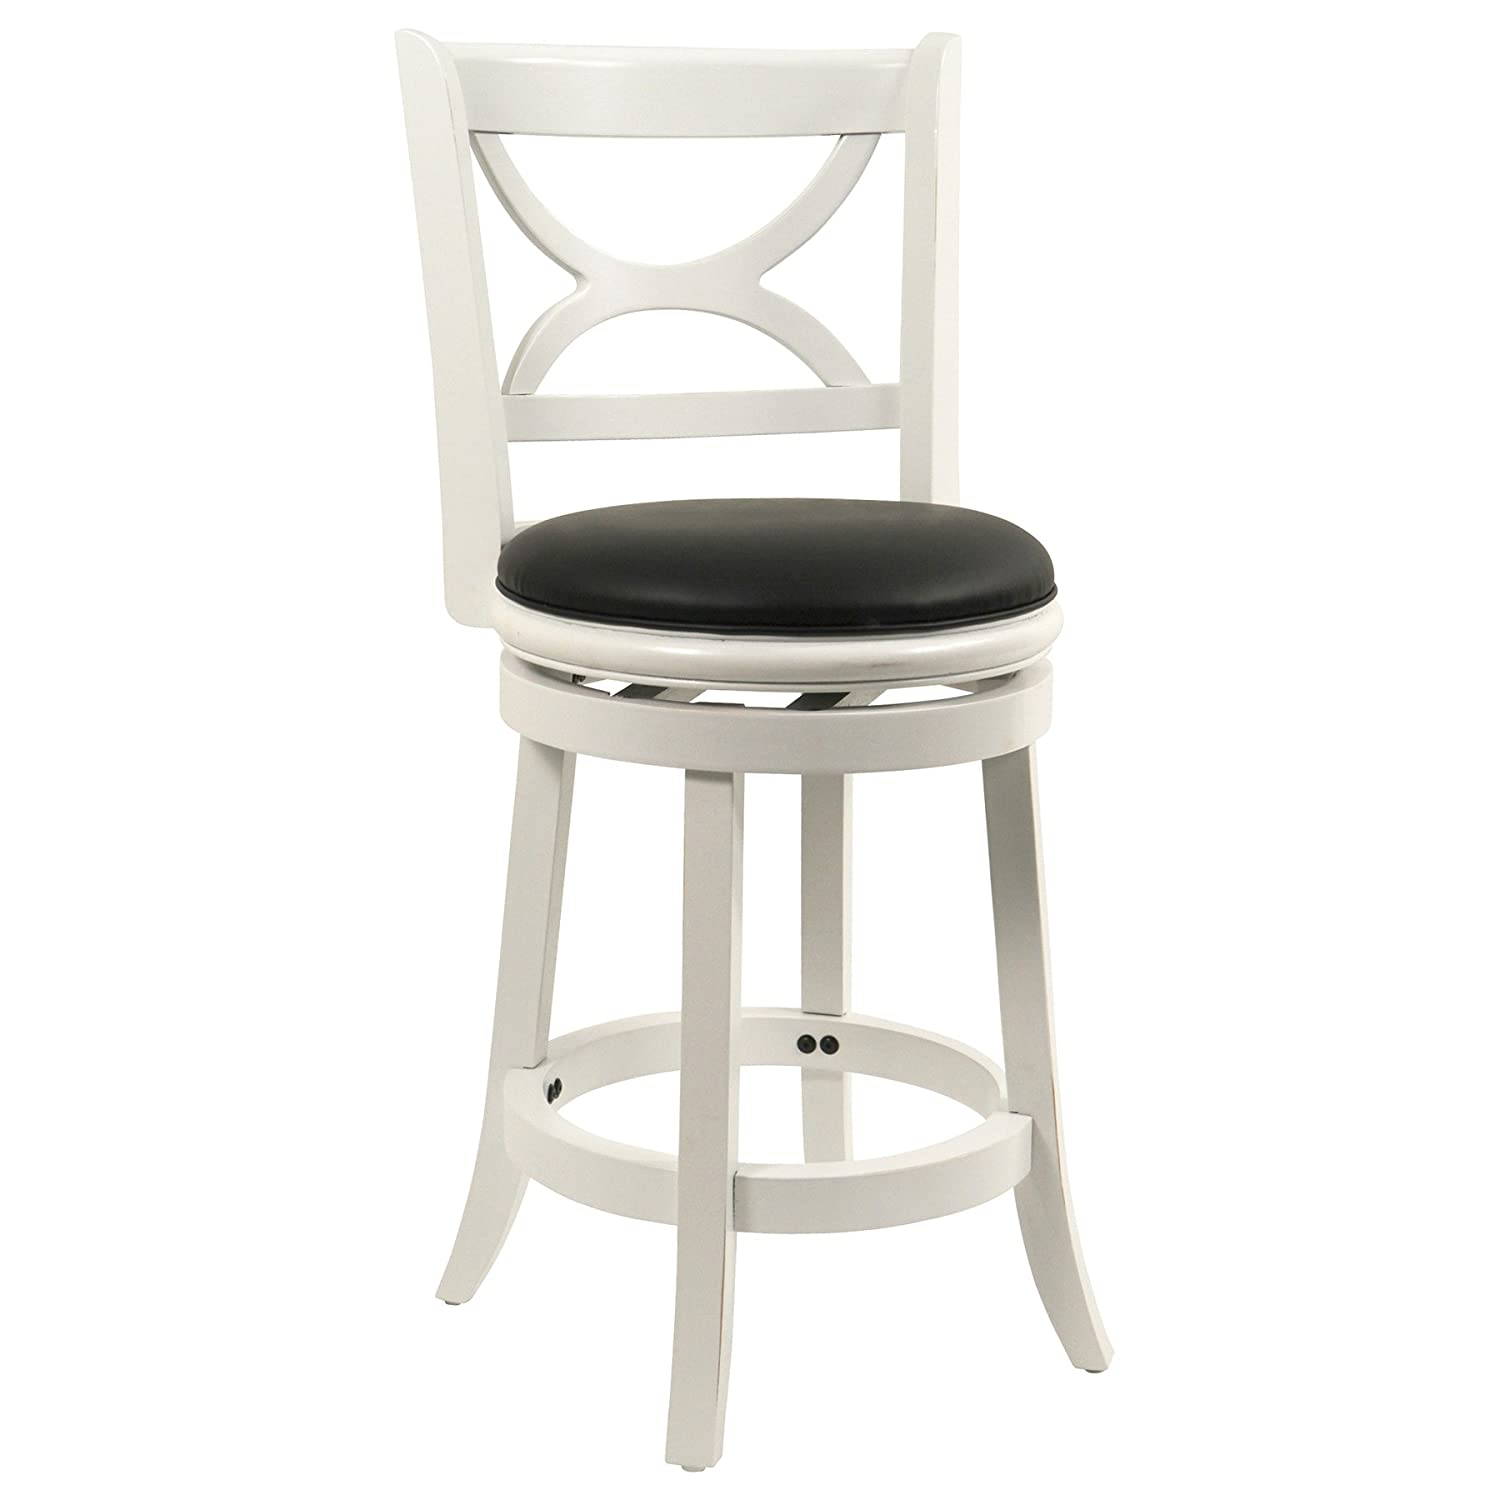 black arms trim swivel stool bar decor marvelous counter stools upholstered nailheads liner height with vinyl